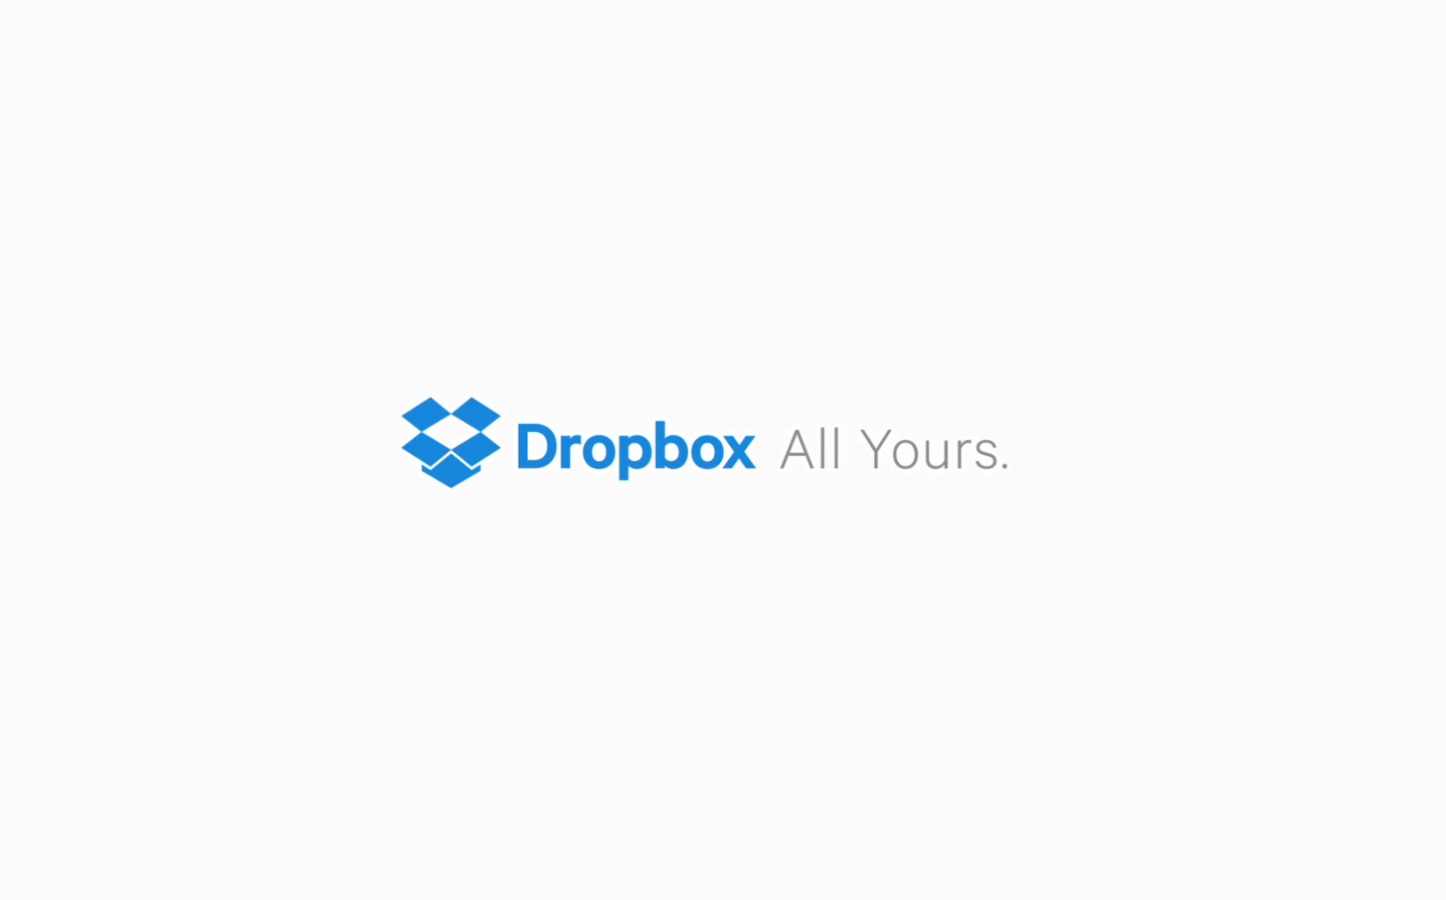 Dropbox New Logo